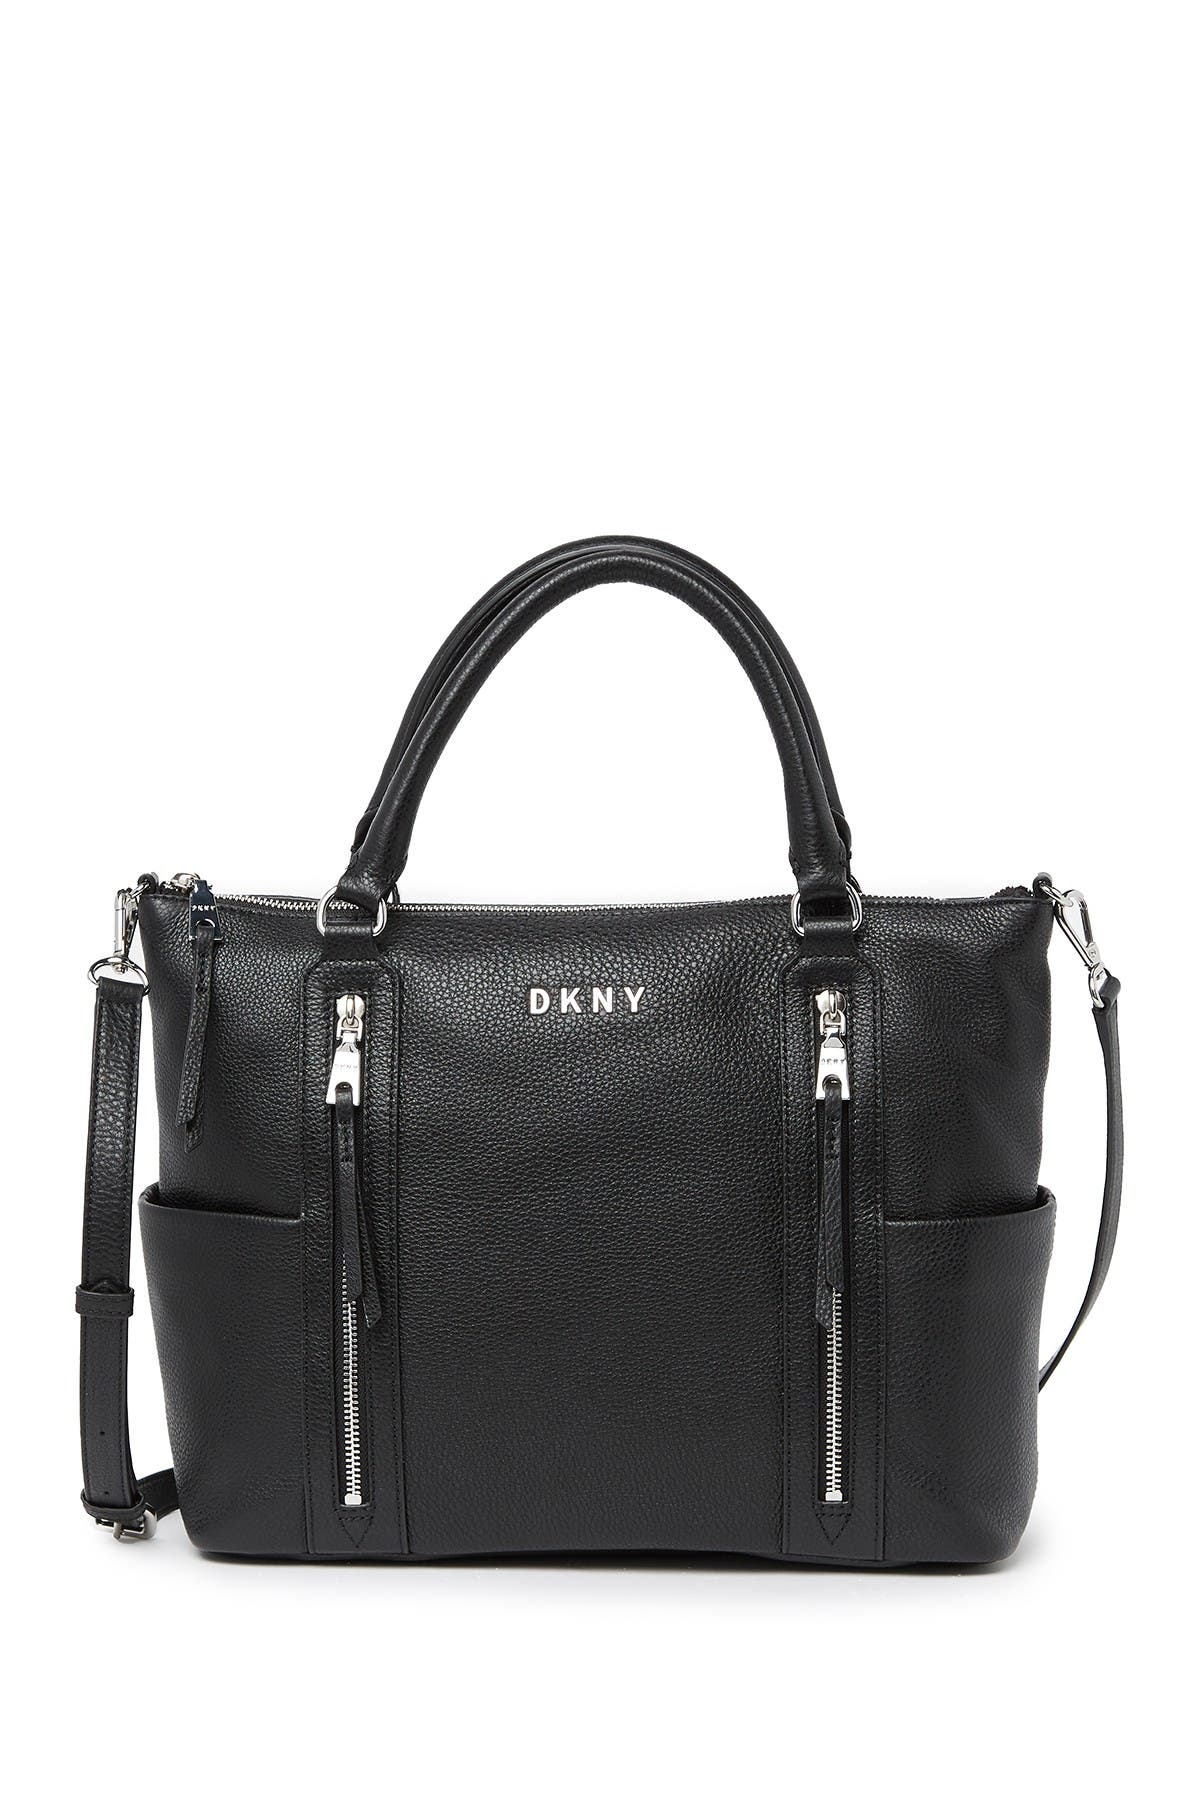 Image of DKNY Tappen Leather Satchel